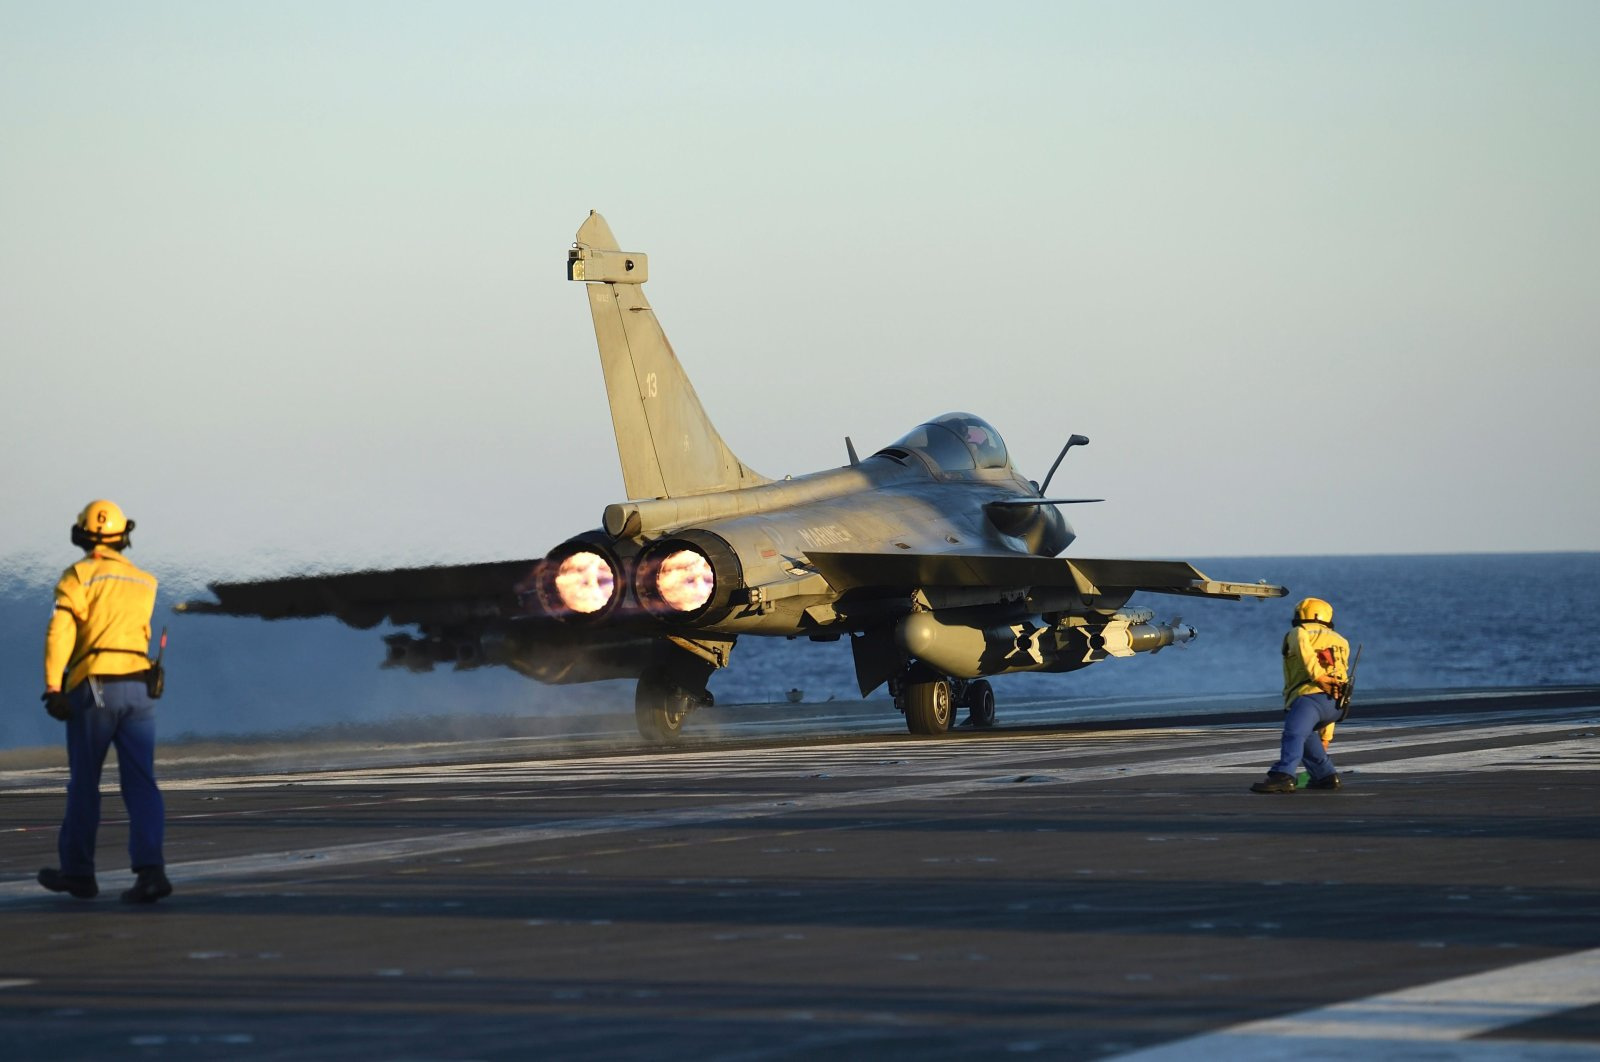 A Rafale fighter jet is ready to be catapulted from the French aircraft carrier Charles de Gaulle at the start of the Operation Arromanches 3 in east Mediterannee sea, on September 30, 2016. (AFP Photo)